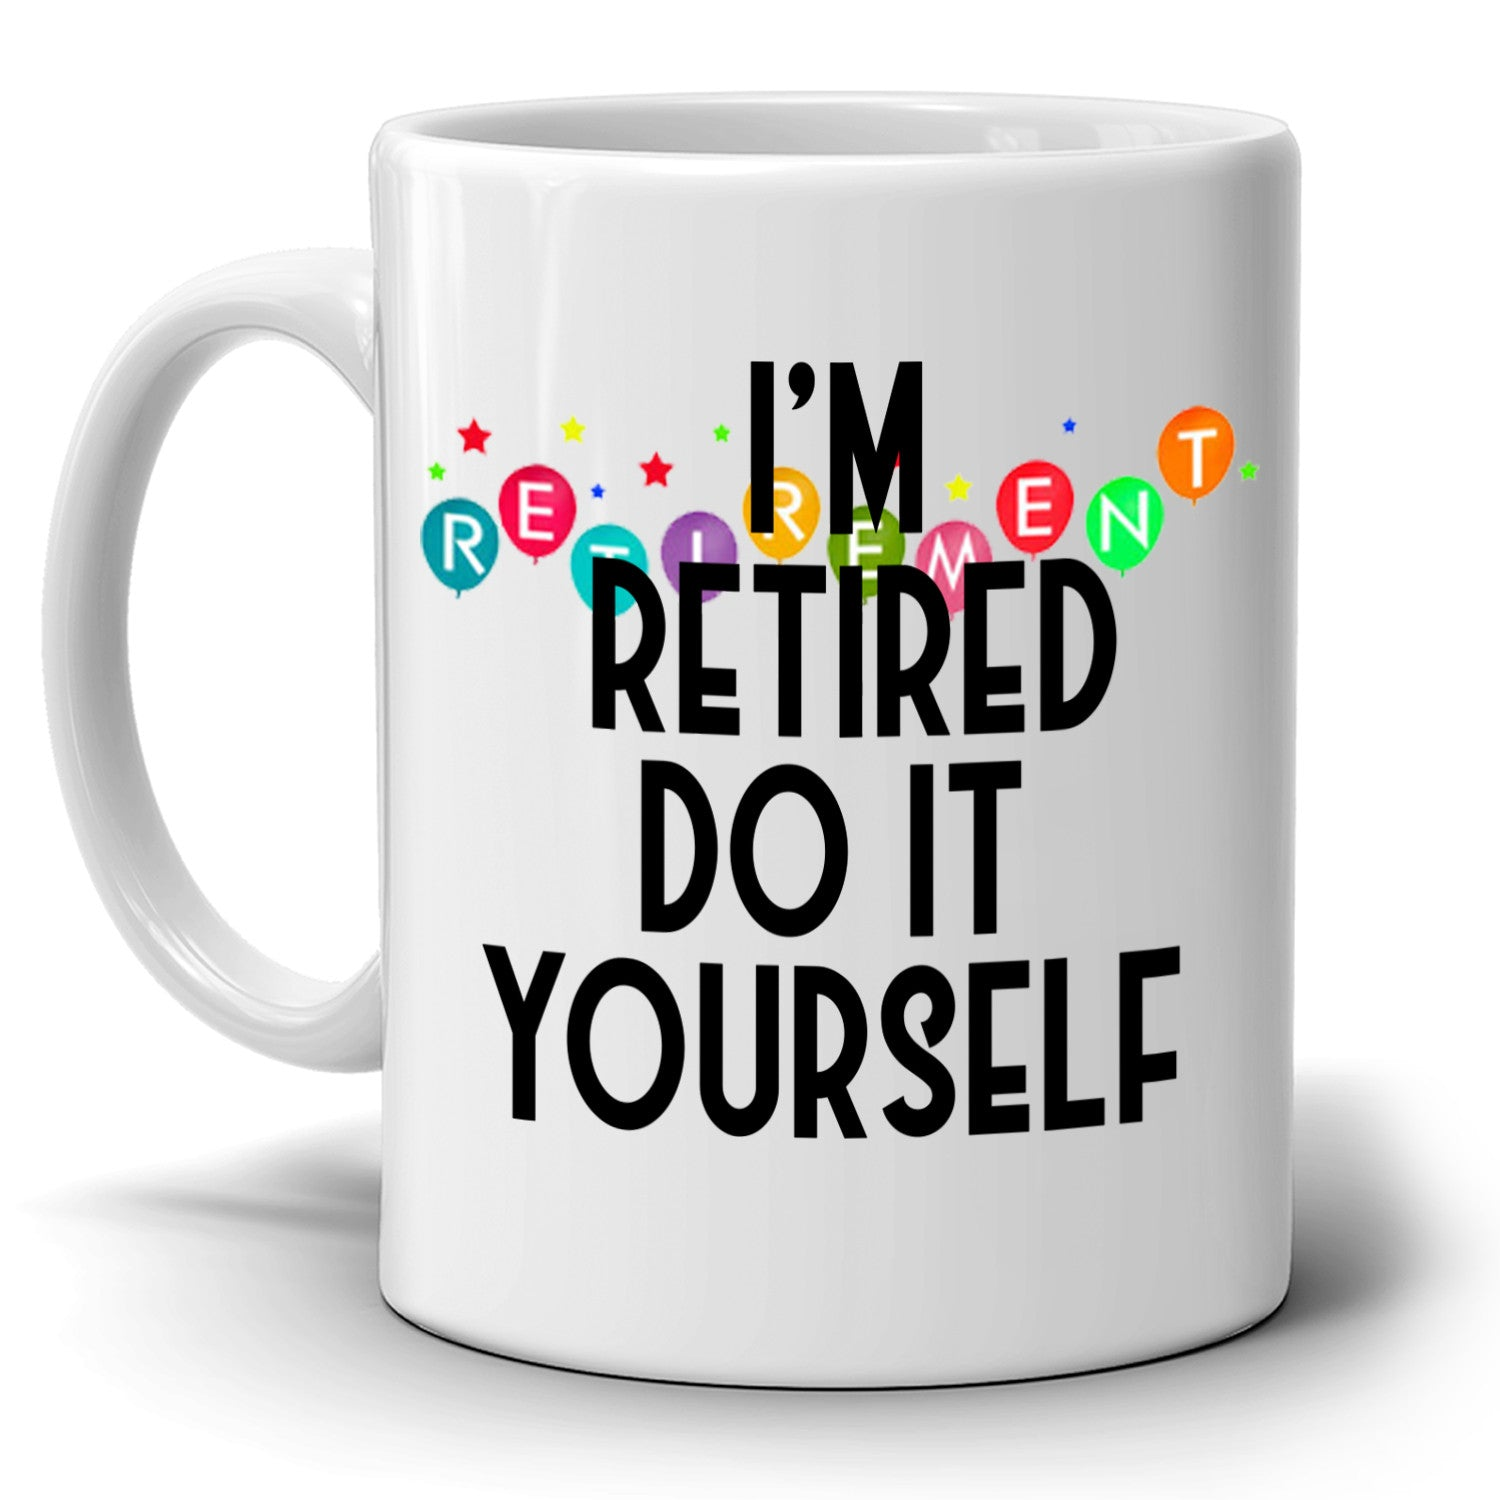 Humorous retirement gag party supplies gifts mug for men and women i humorous retirement gag party supplies gifts mug for men and women im retired do it yourself coffee cup printed on both sides solutioingenieria Gallery